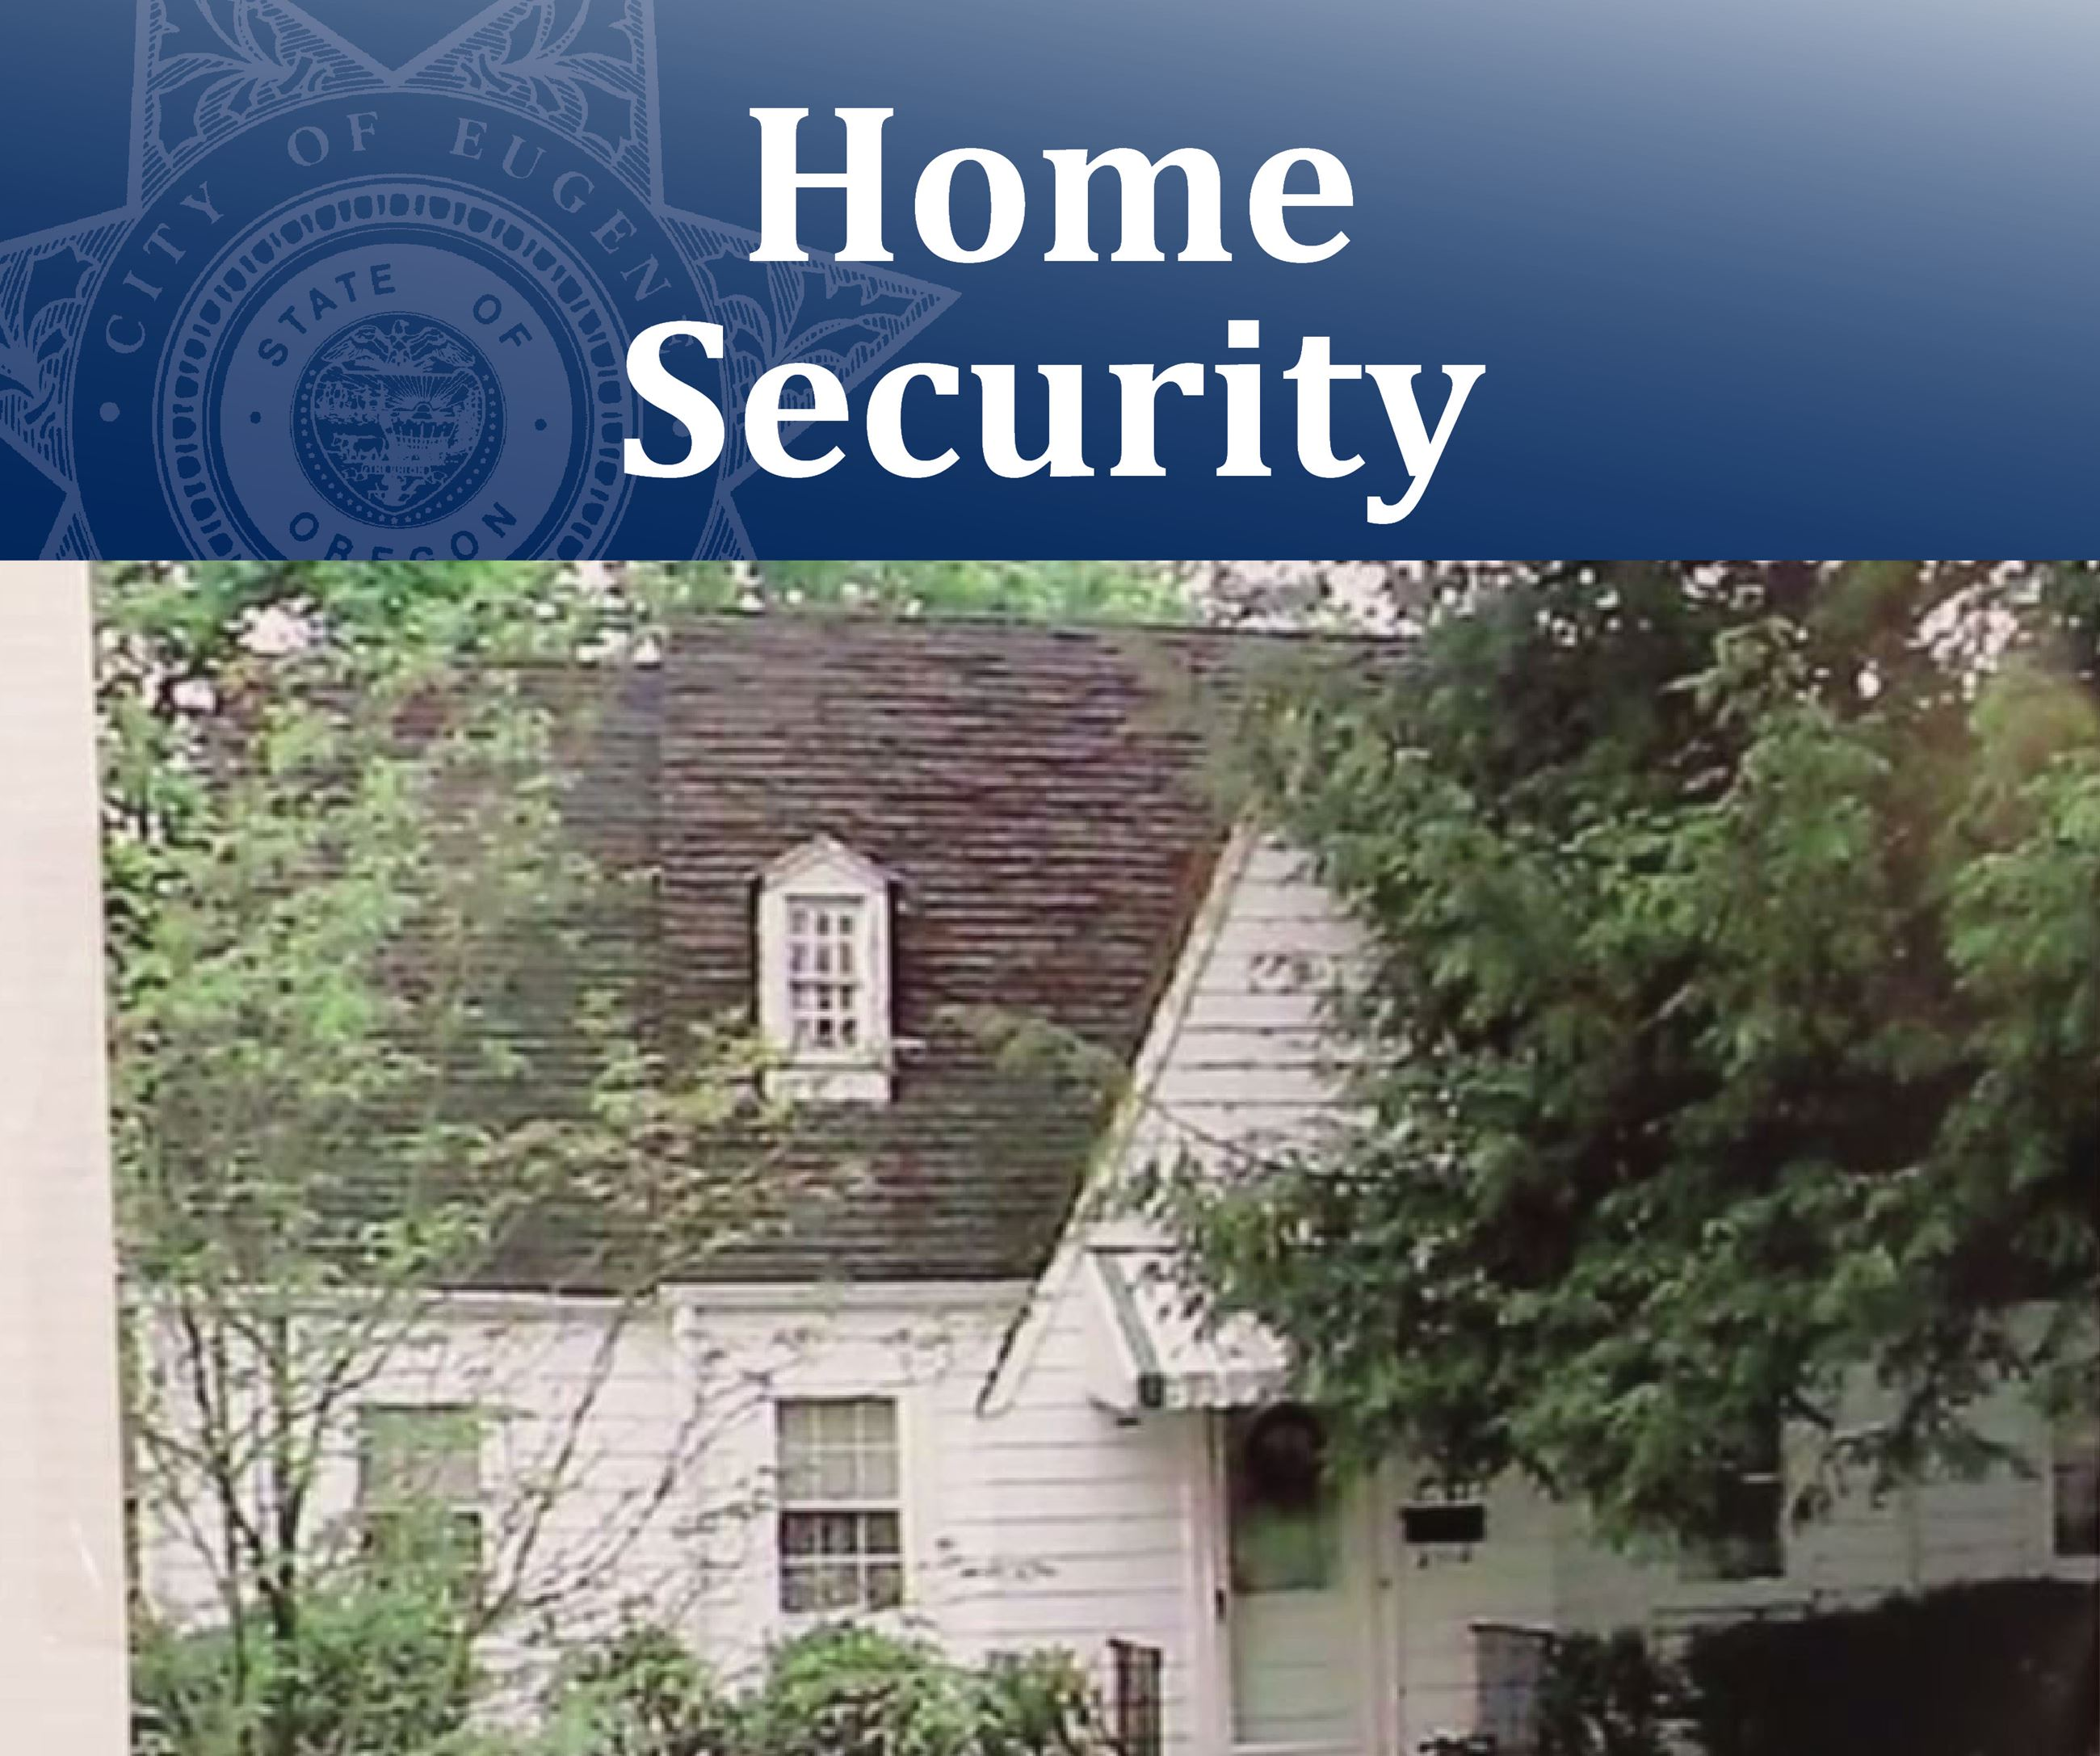 HomeSecurity Opens in new window